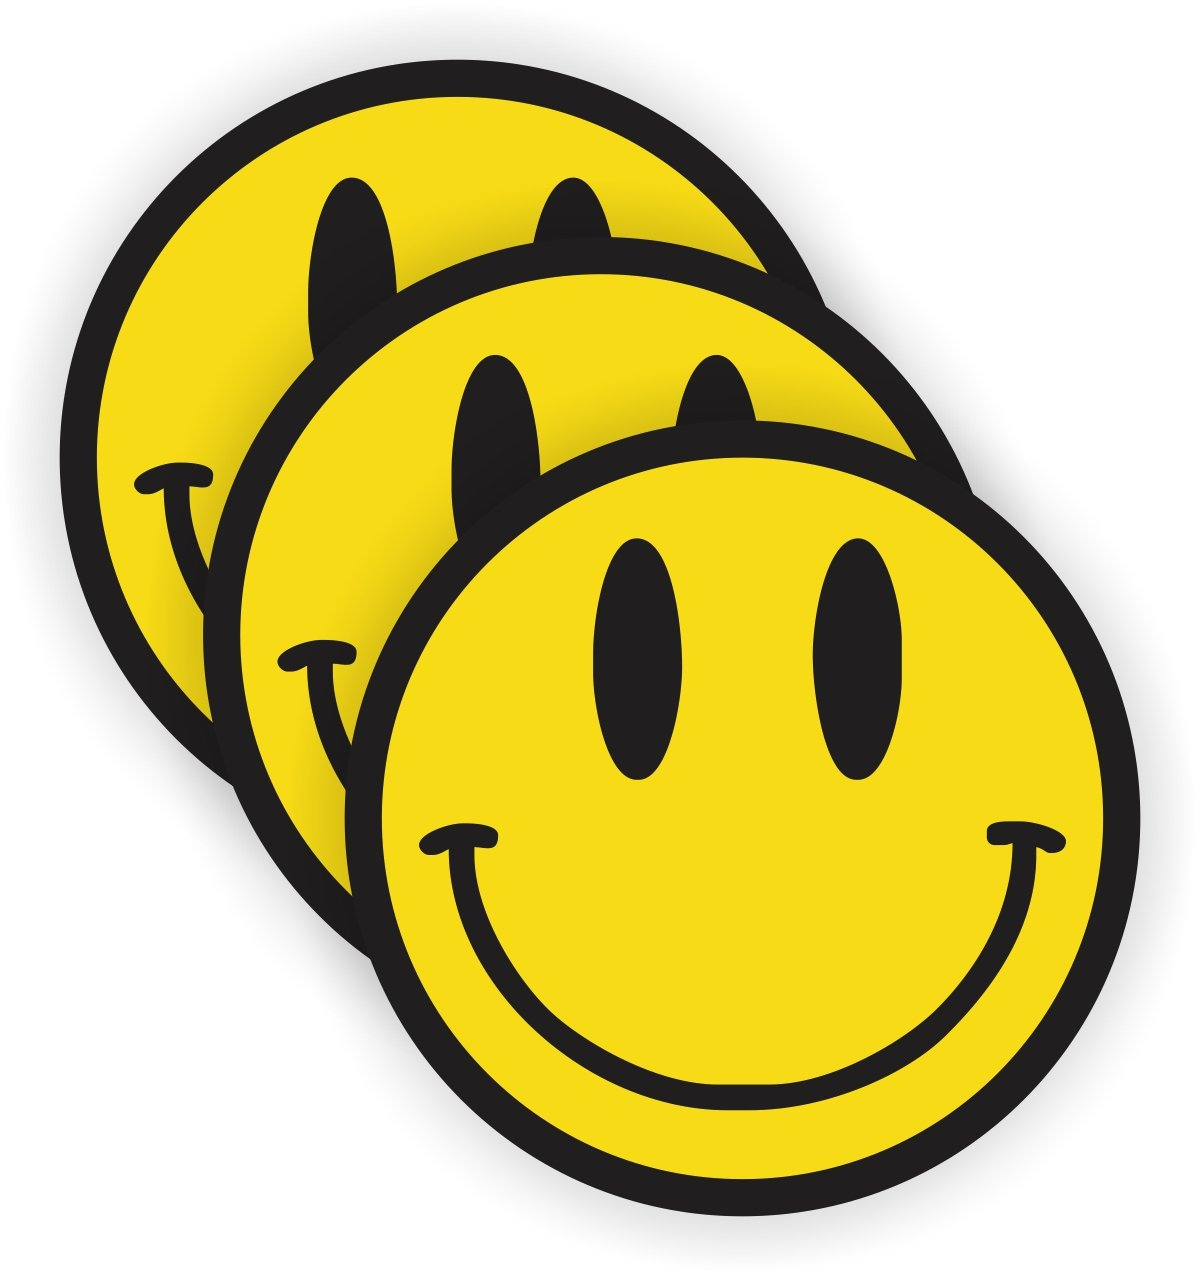 Smiley Face Hard Hat Sticker | Helmet Decal | Label Lunch Tool Box Motorcycle Hippie Woodstock JAY Graphics